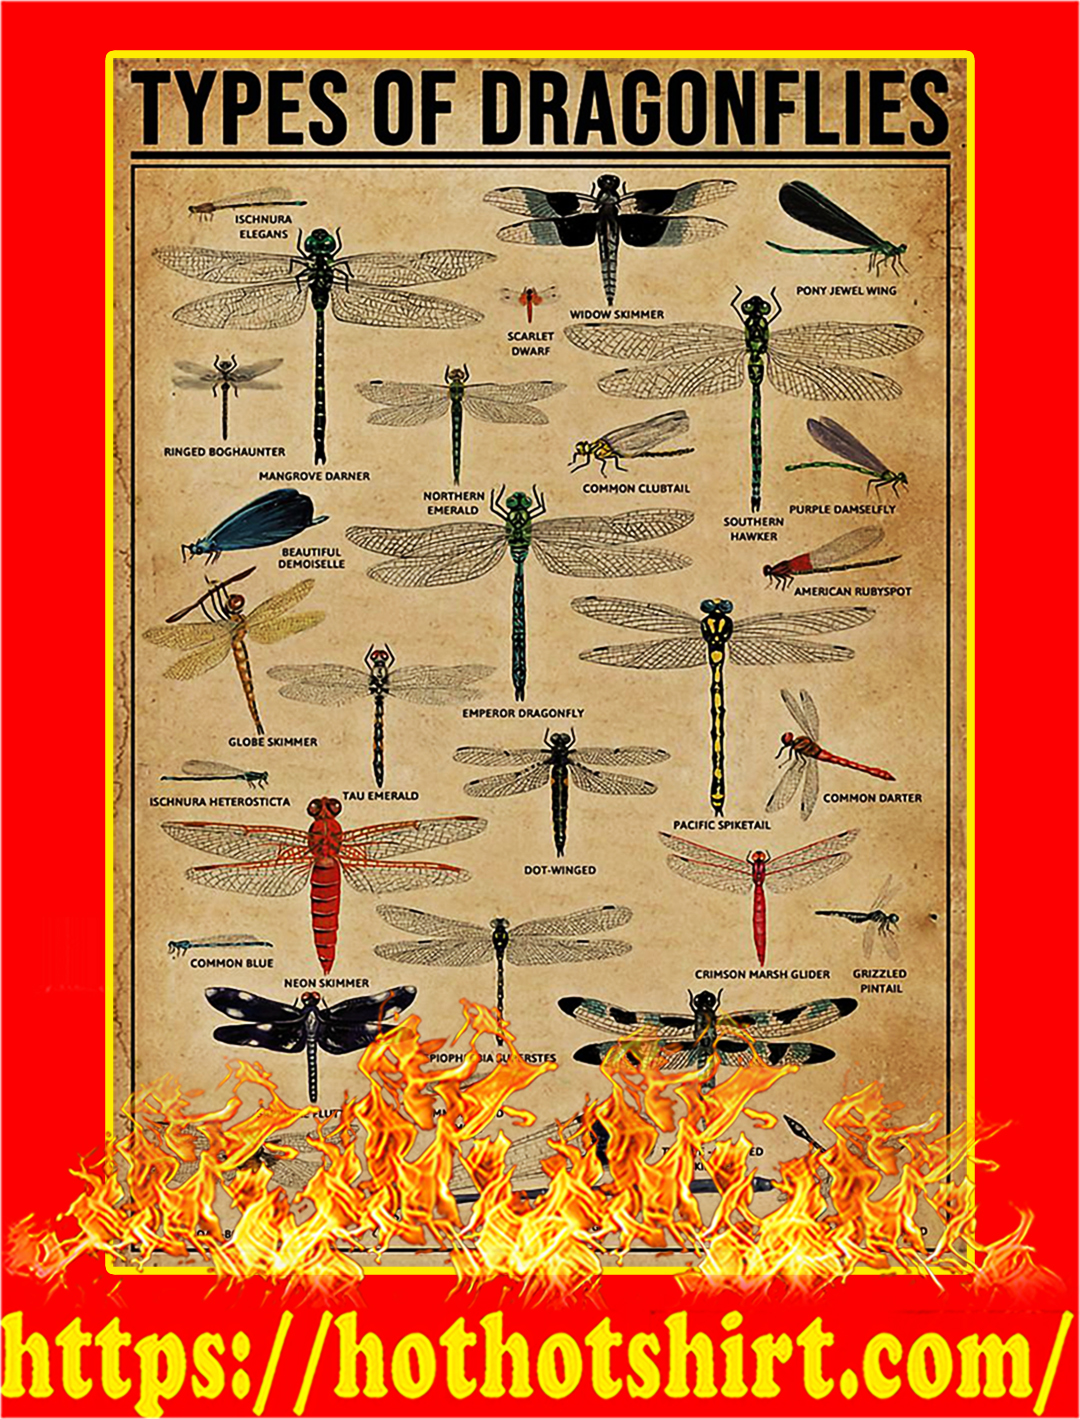 Types Of Dragonflies Poster - A2